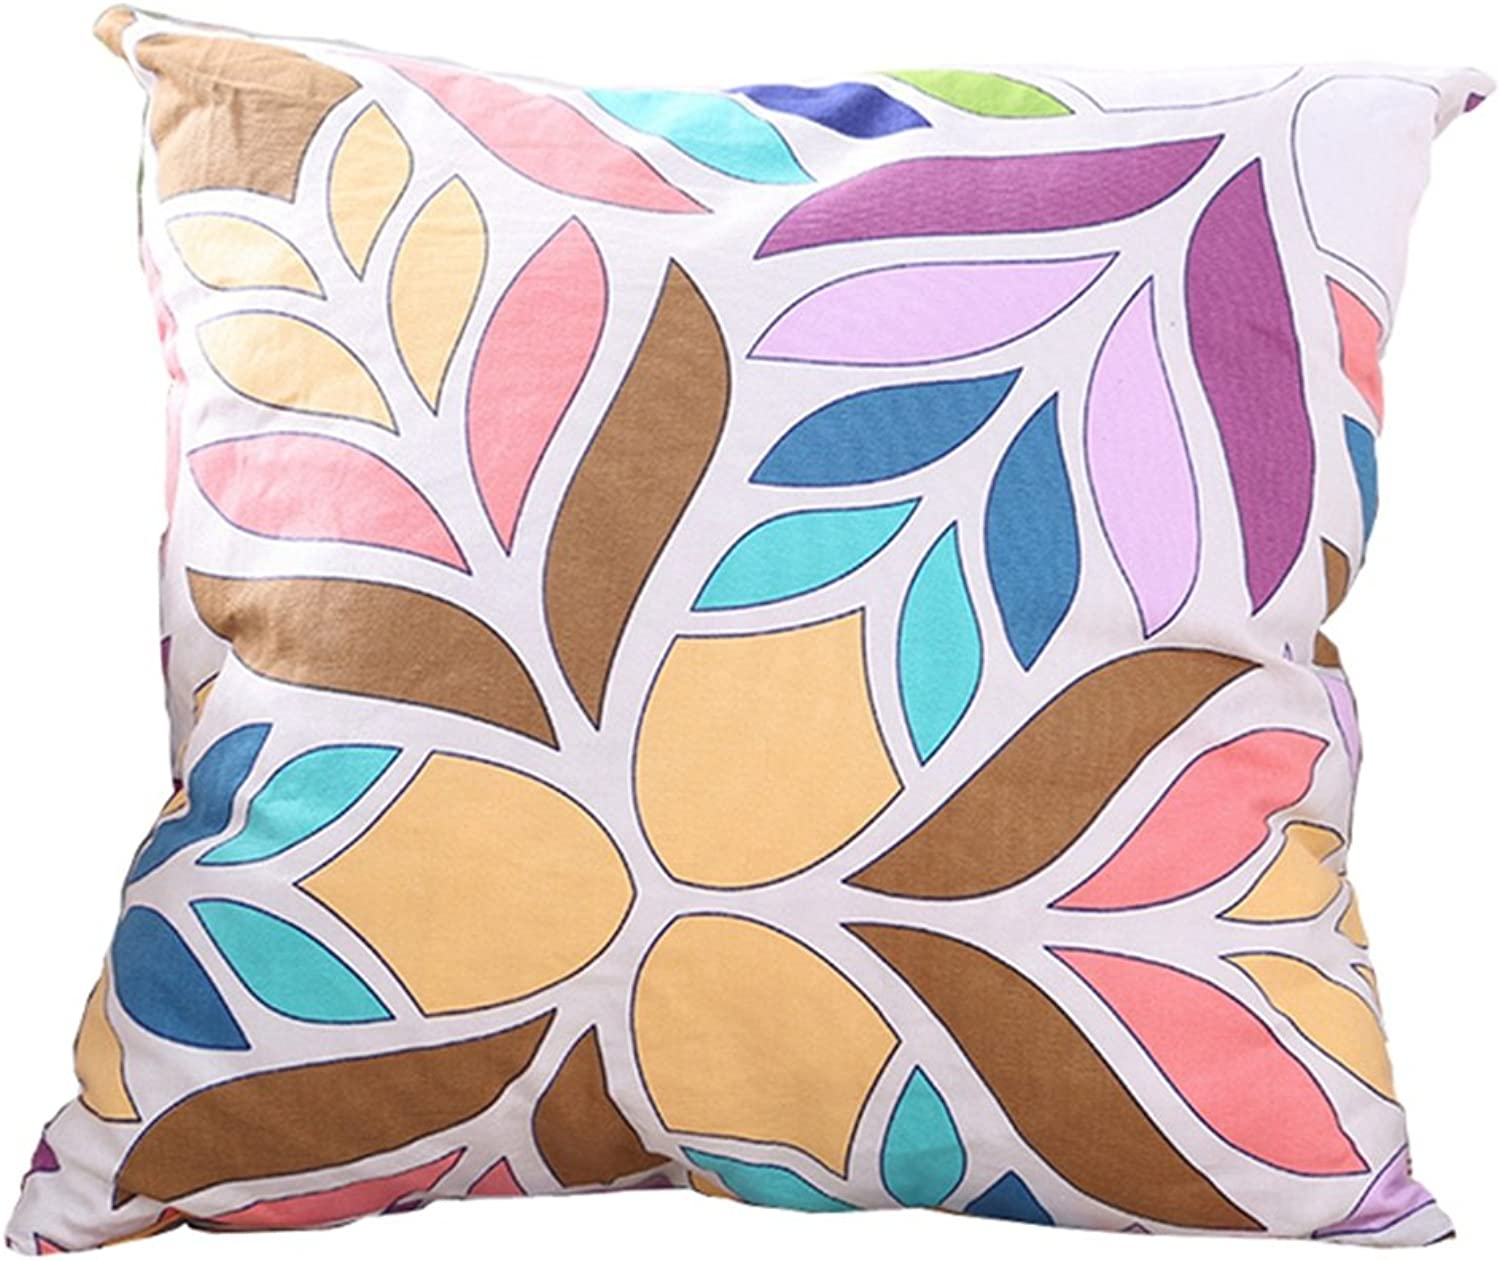 MultiSized Both Sides Pattern Printed Stuffed Throw Pillow LivebyCare PP Cotton Insert Filling Filled Cushion Pattern Zipper for Lounge Saloon Chair Back Seat Sofa Couch